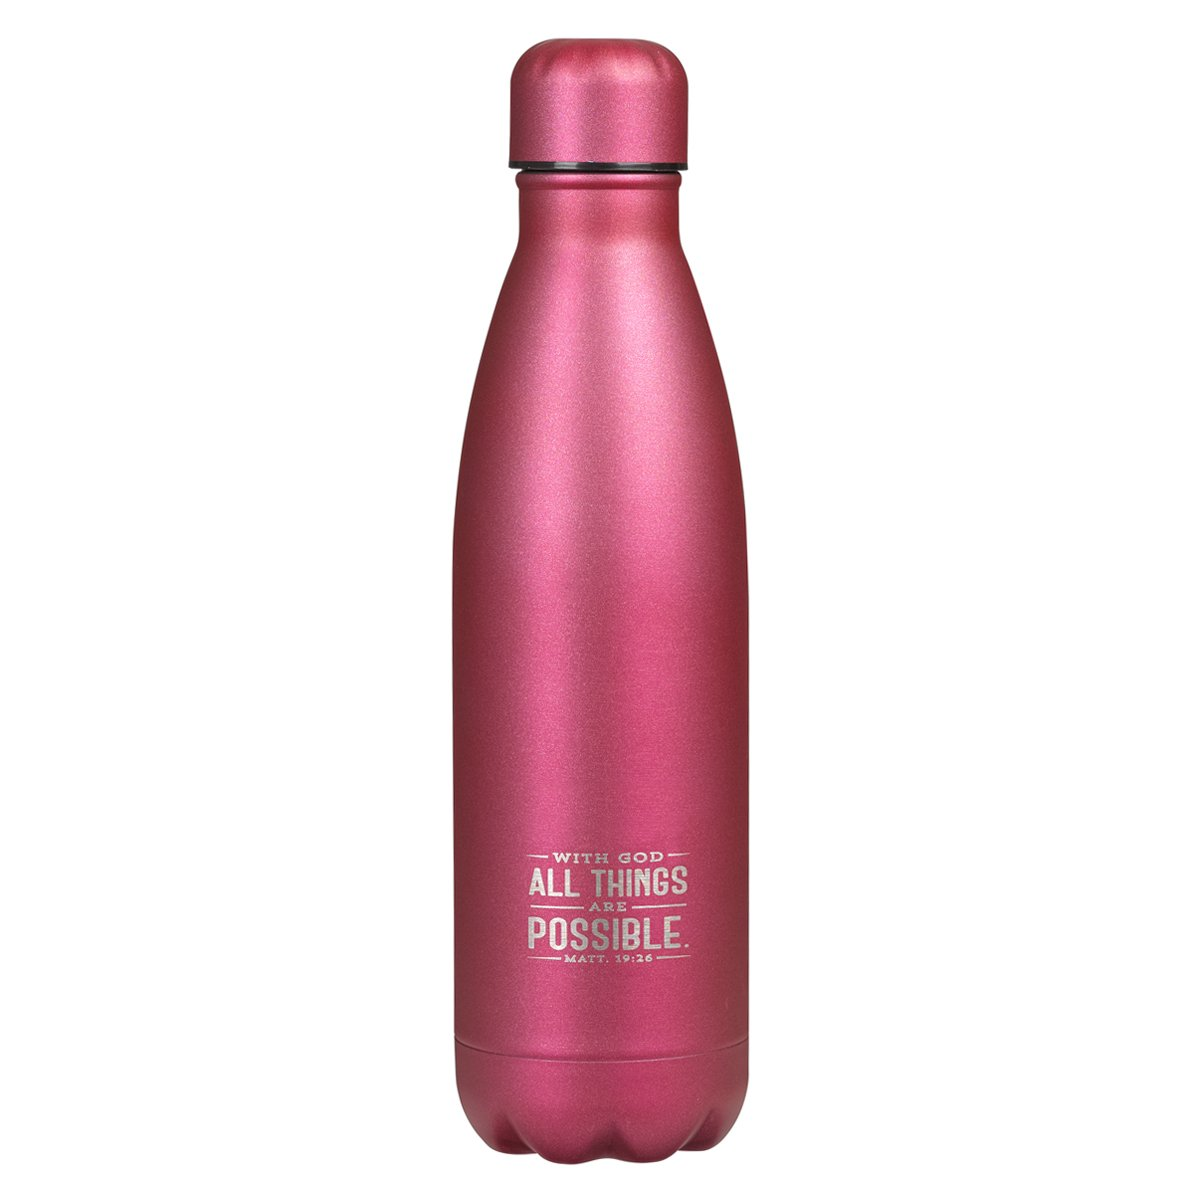 Stainless Steel Water Bottle: All Things Are Possible